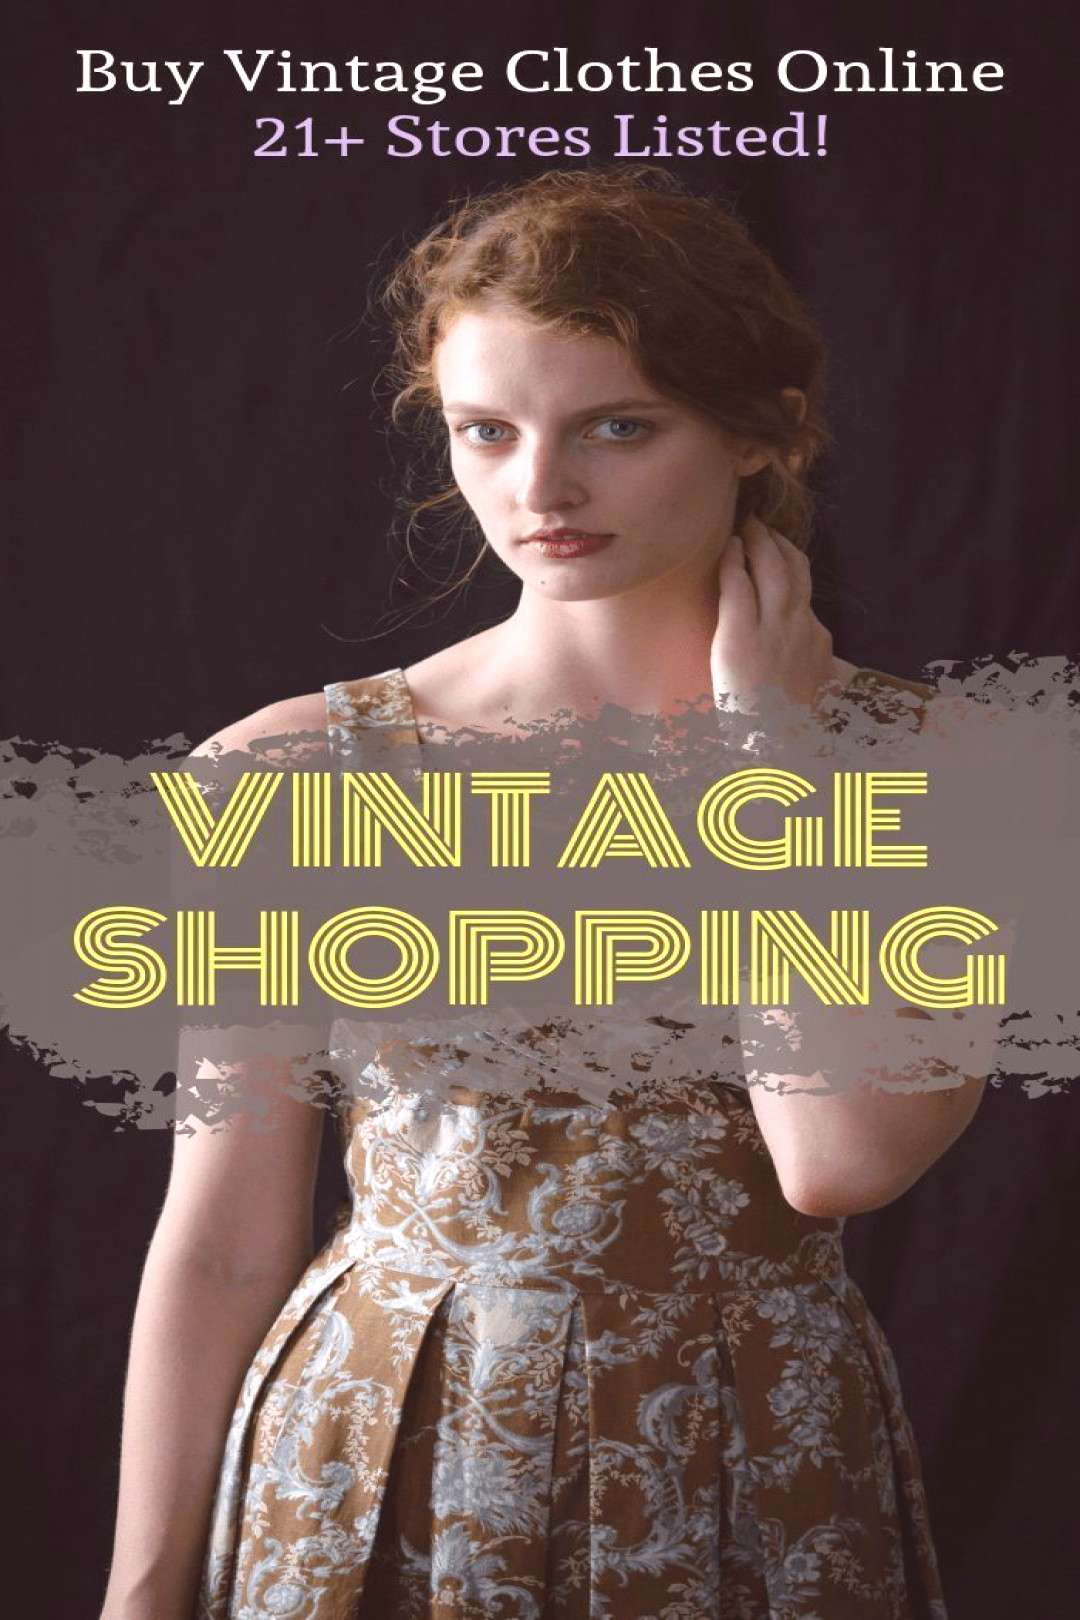 Buy Vintage Clothes Online Wondered where you can get 80s vintage clothing online? Or where you can